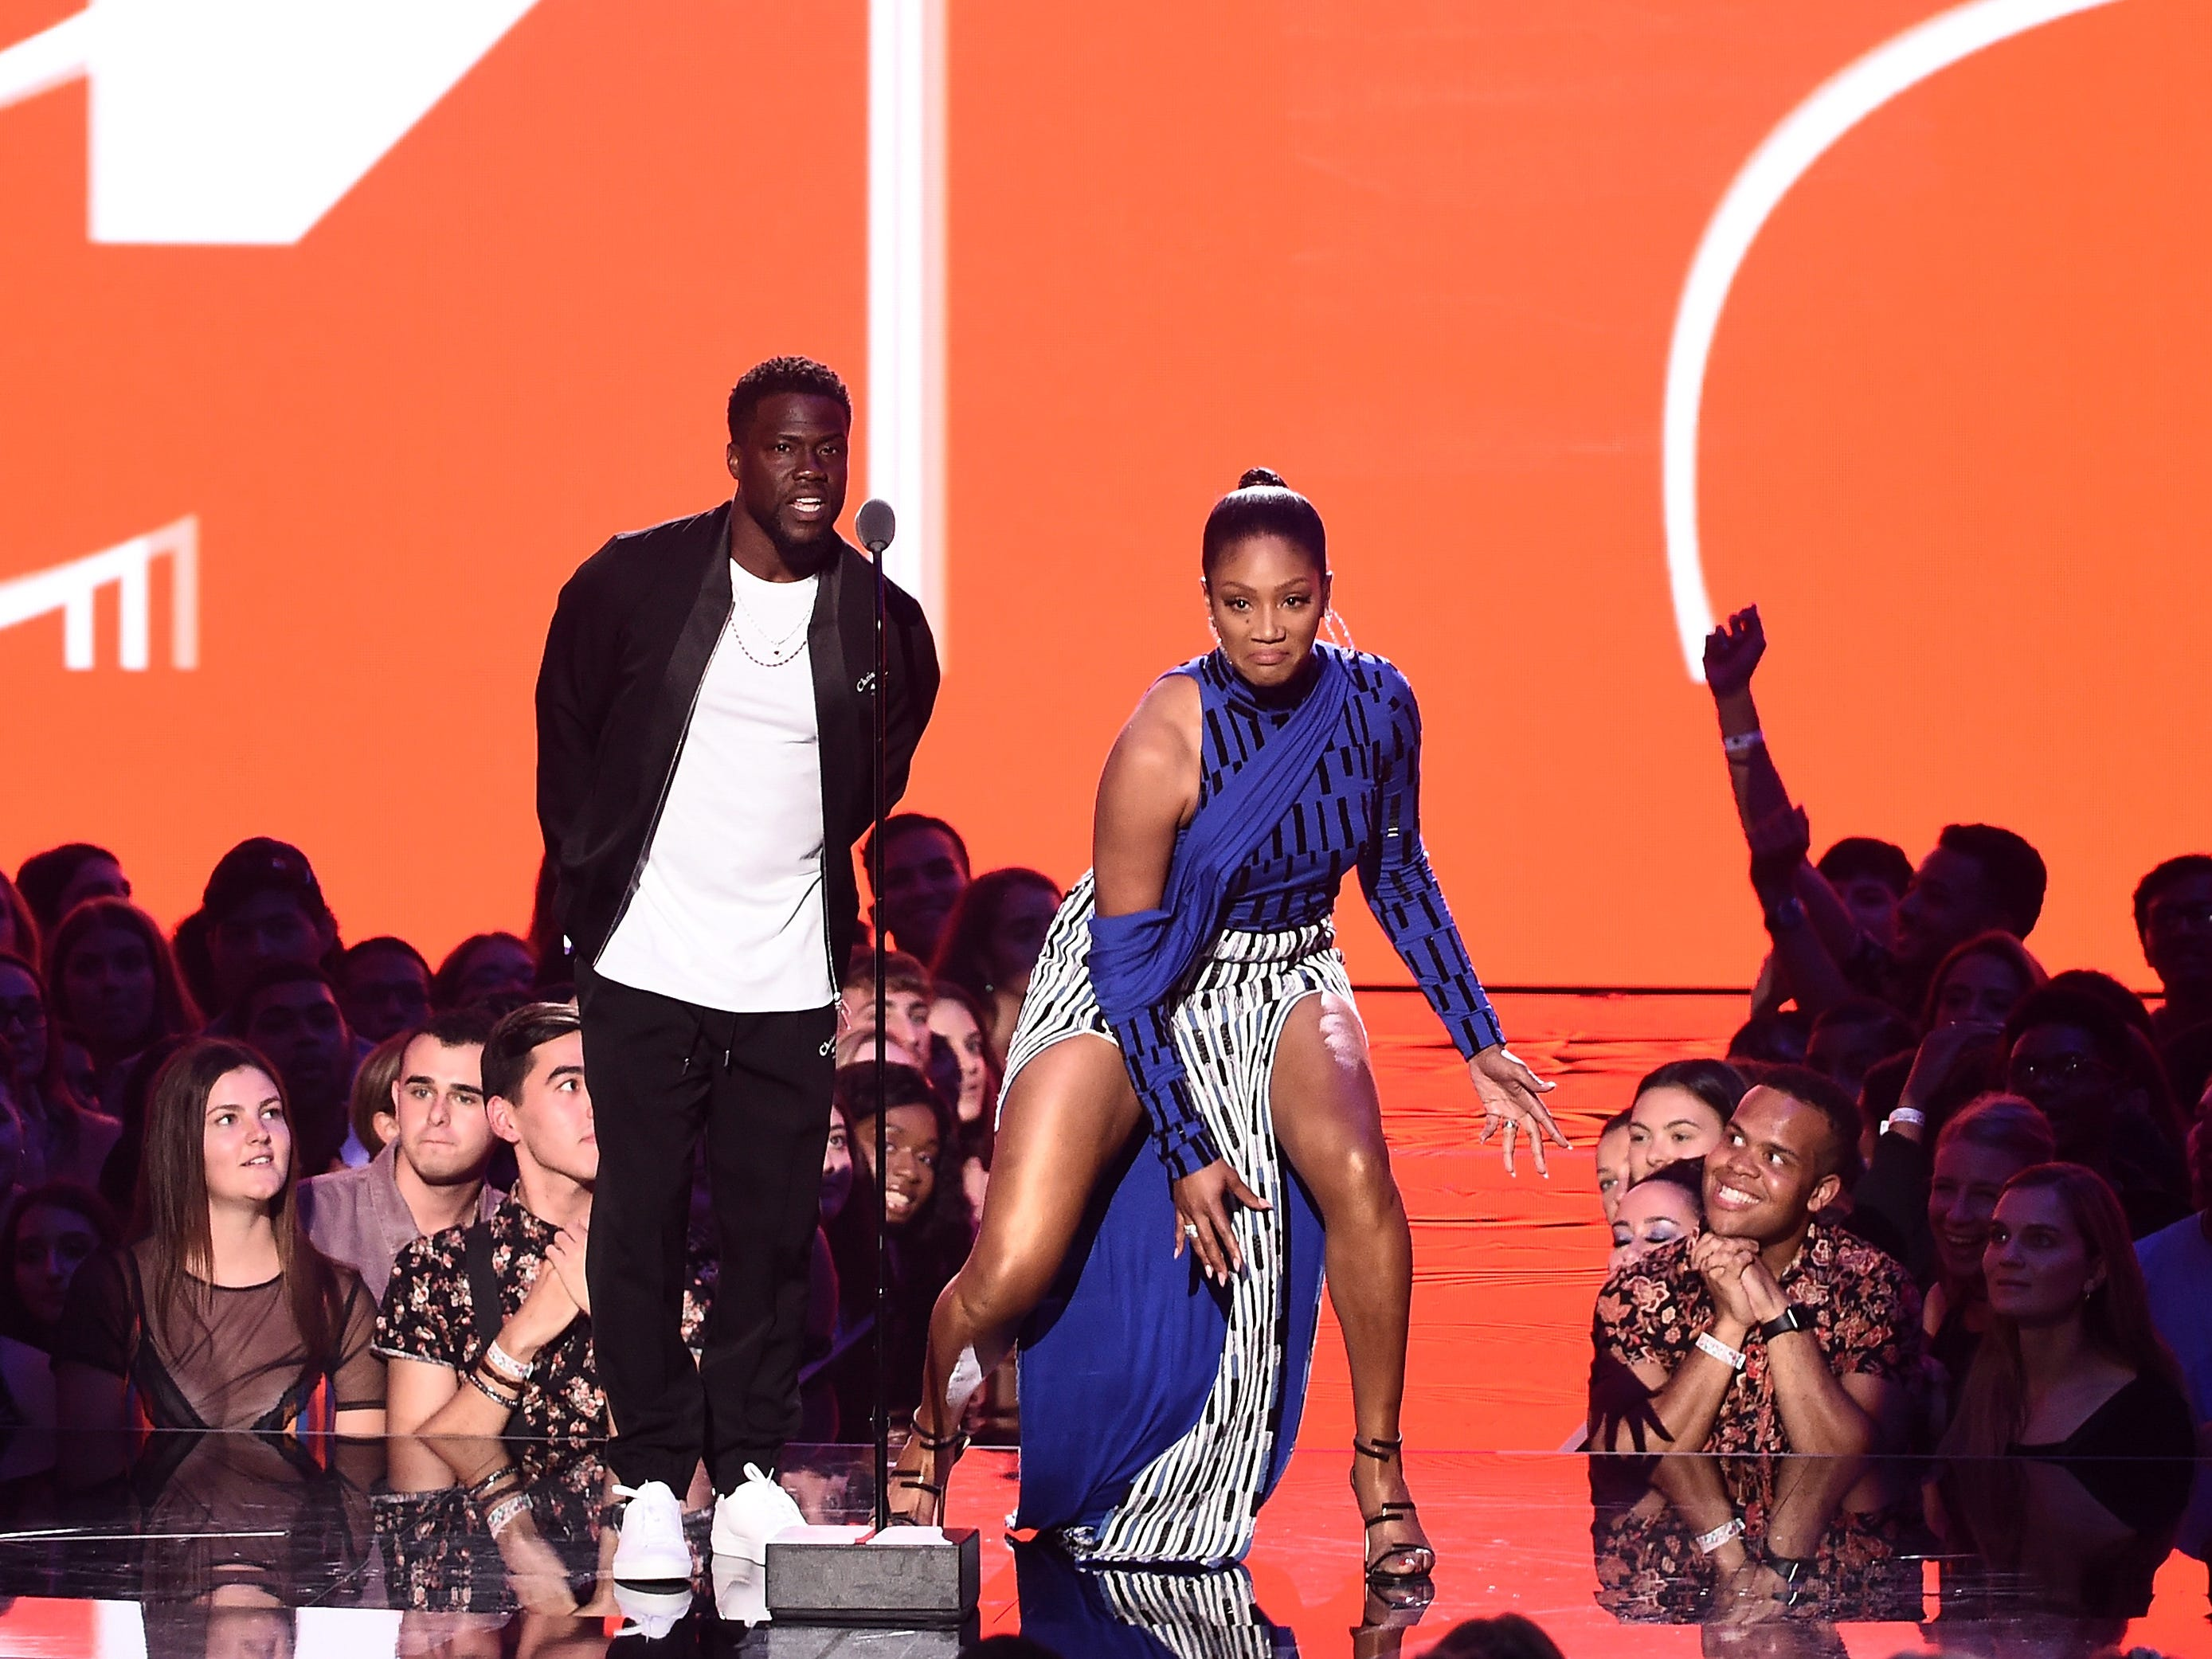 NEW YORK, NY - AUGUST 20:  Kevin Hart and Tiffany Haddish speak onstage during the 2018 MTV Video Music Awards at Radio City Music Hall on August 20, 2018 in New York City.  (Photo by Michael Loccisano/Getty Images for MTV) ORG XMIT: 775210297 ORIG FILE ID: 1020304454